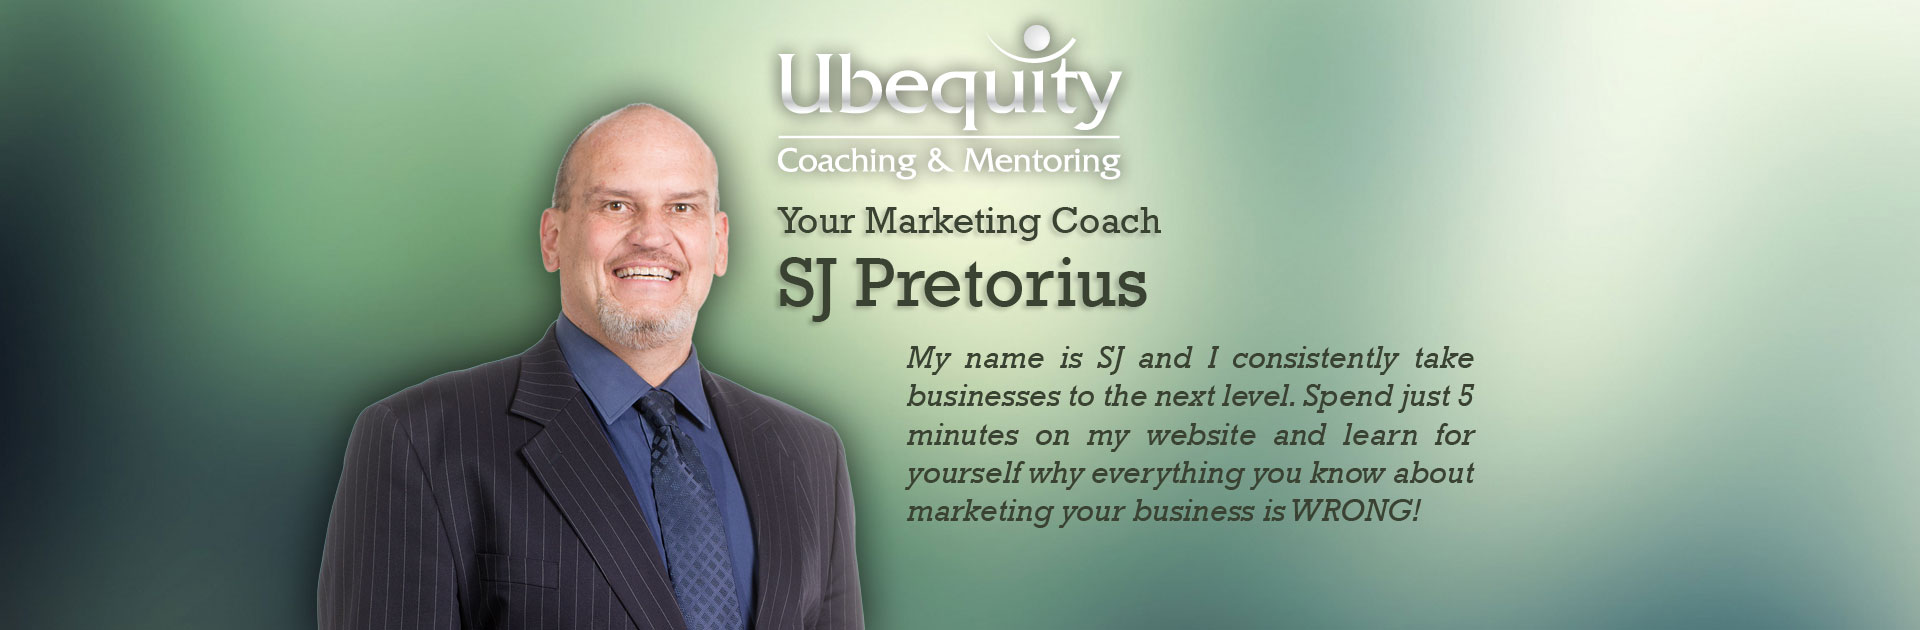 Your Marketing Coach